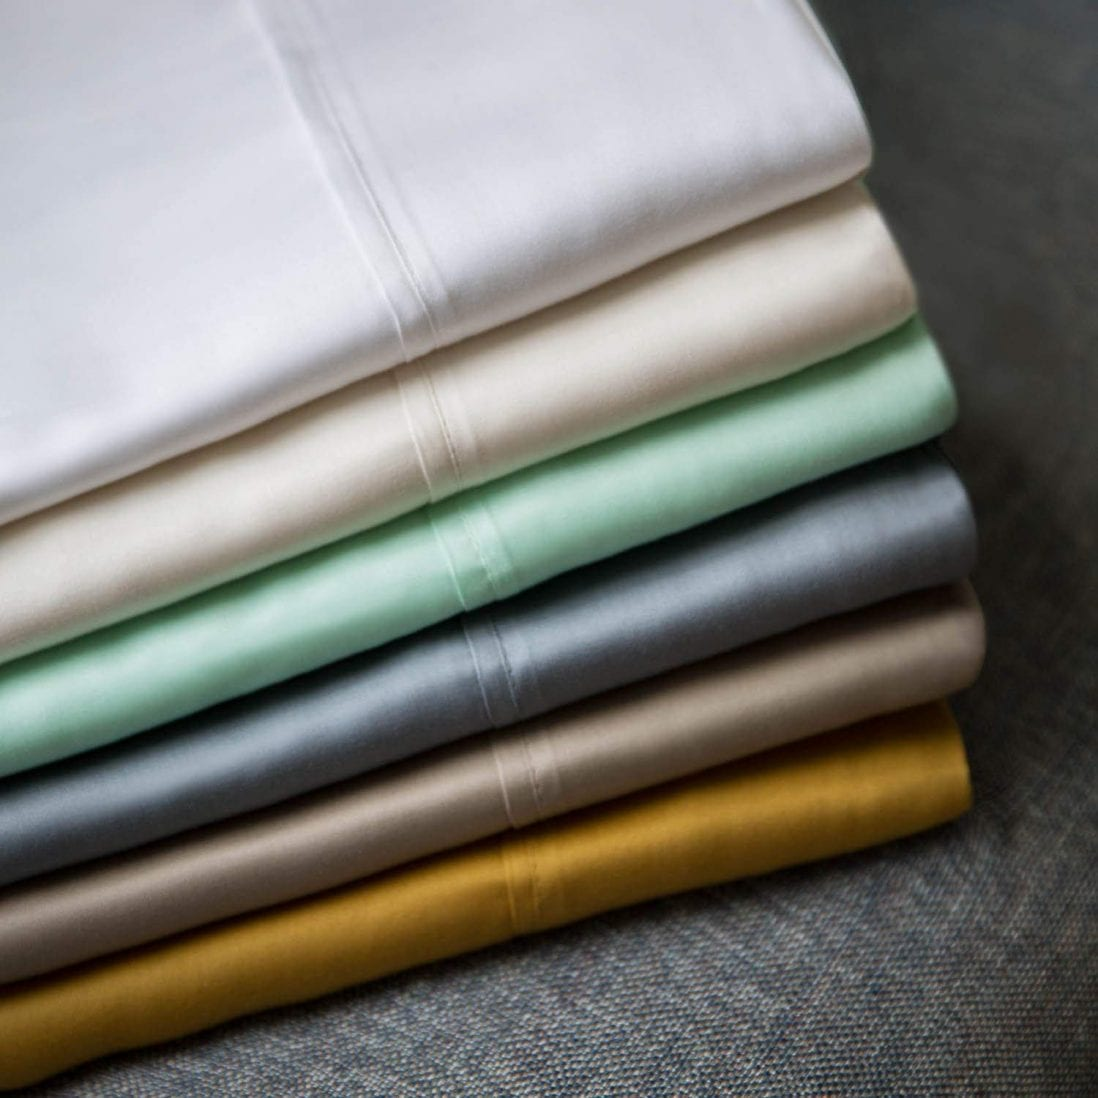 Linenspa Best Tencel Sheets Review and Buying Guide by www.dailysleep.org